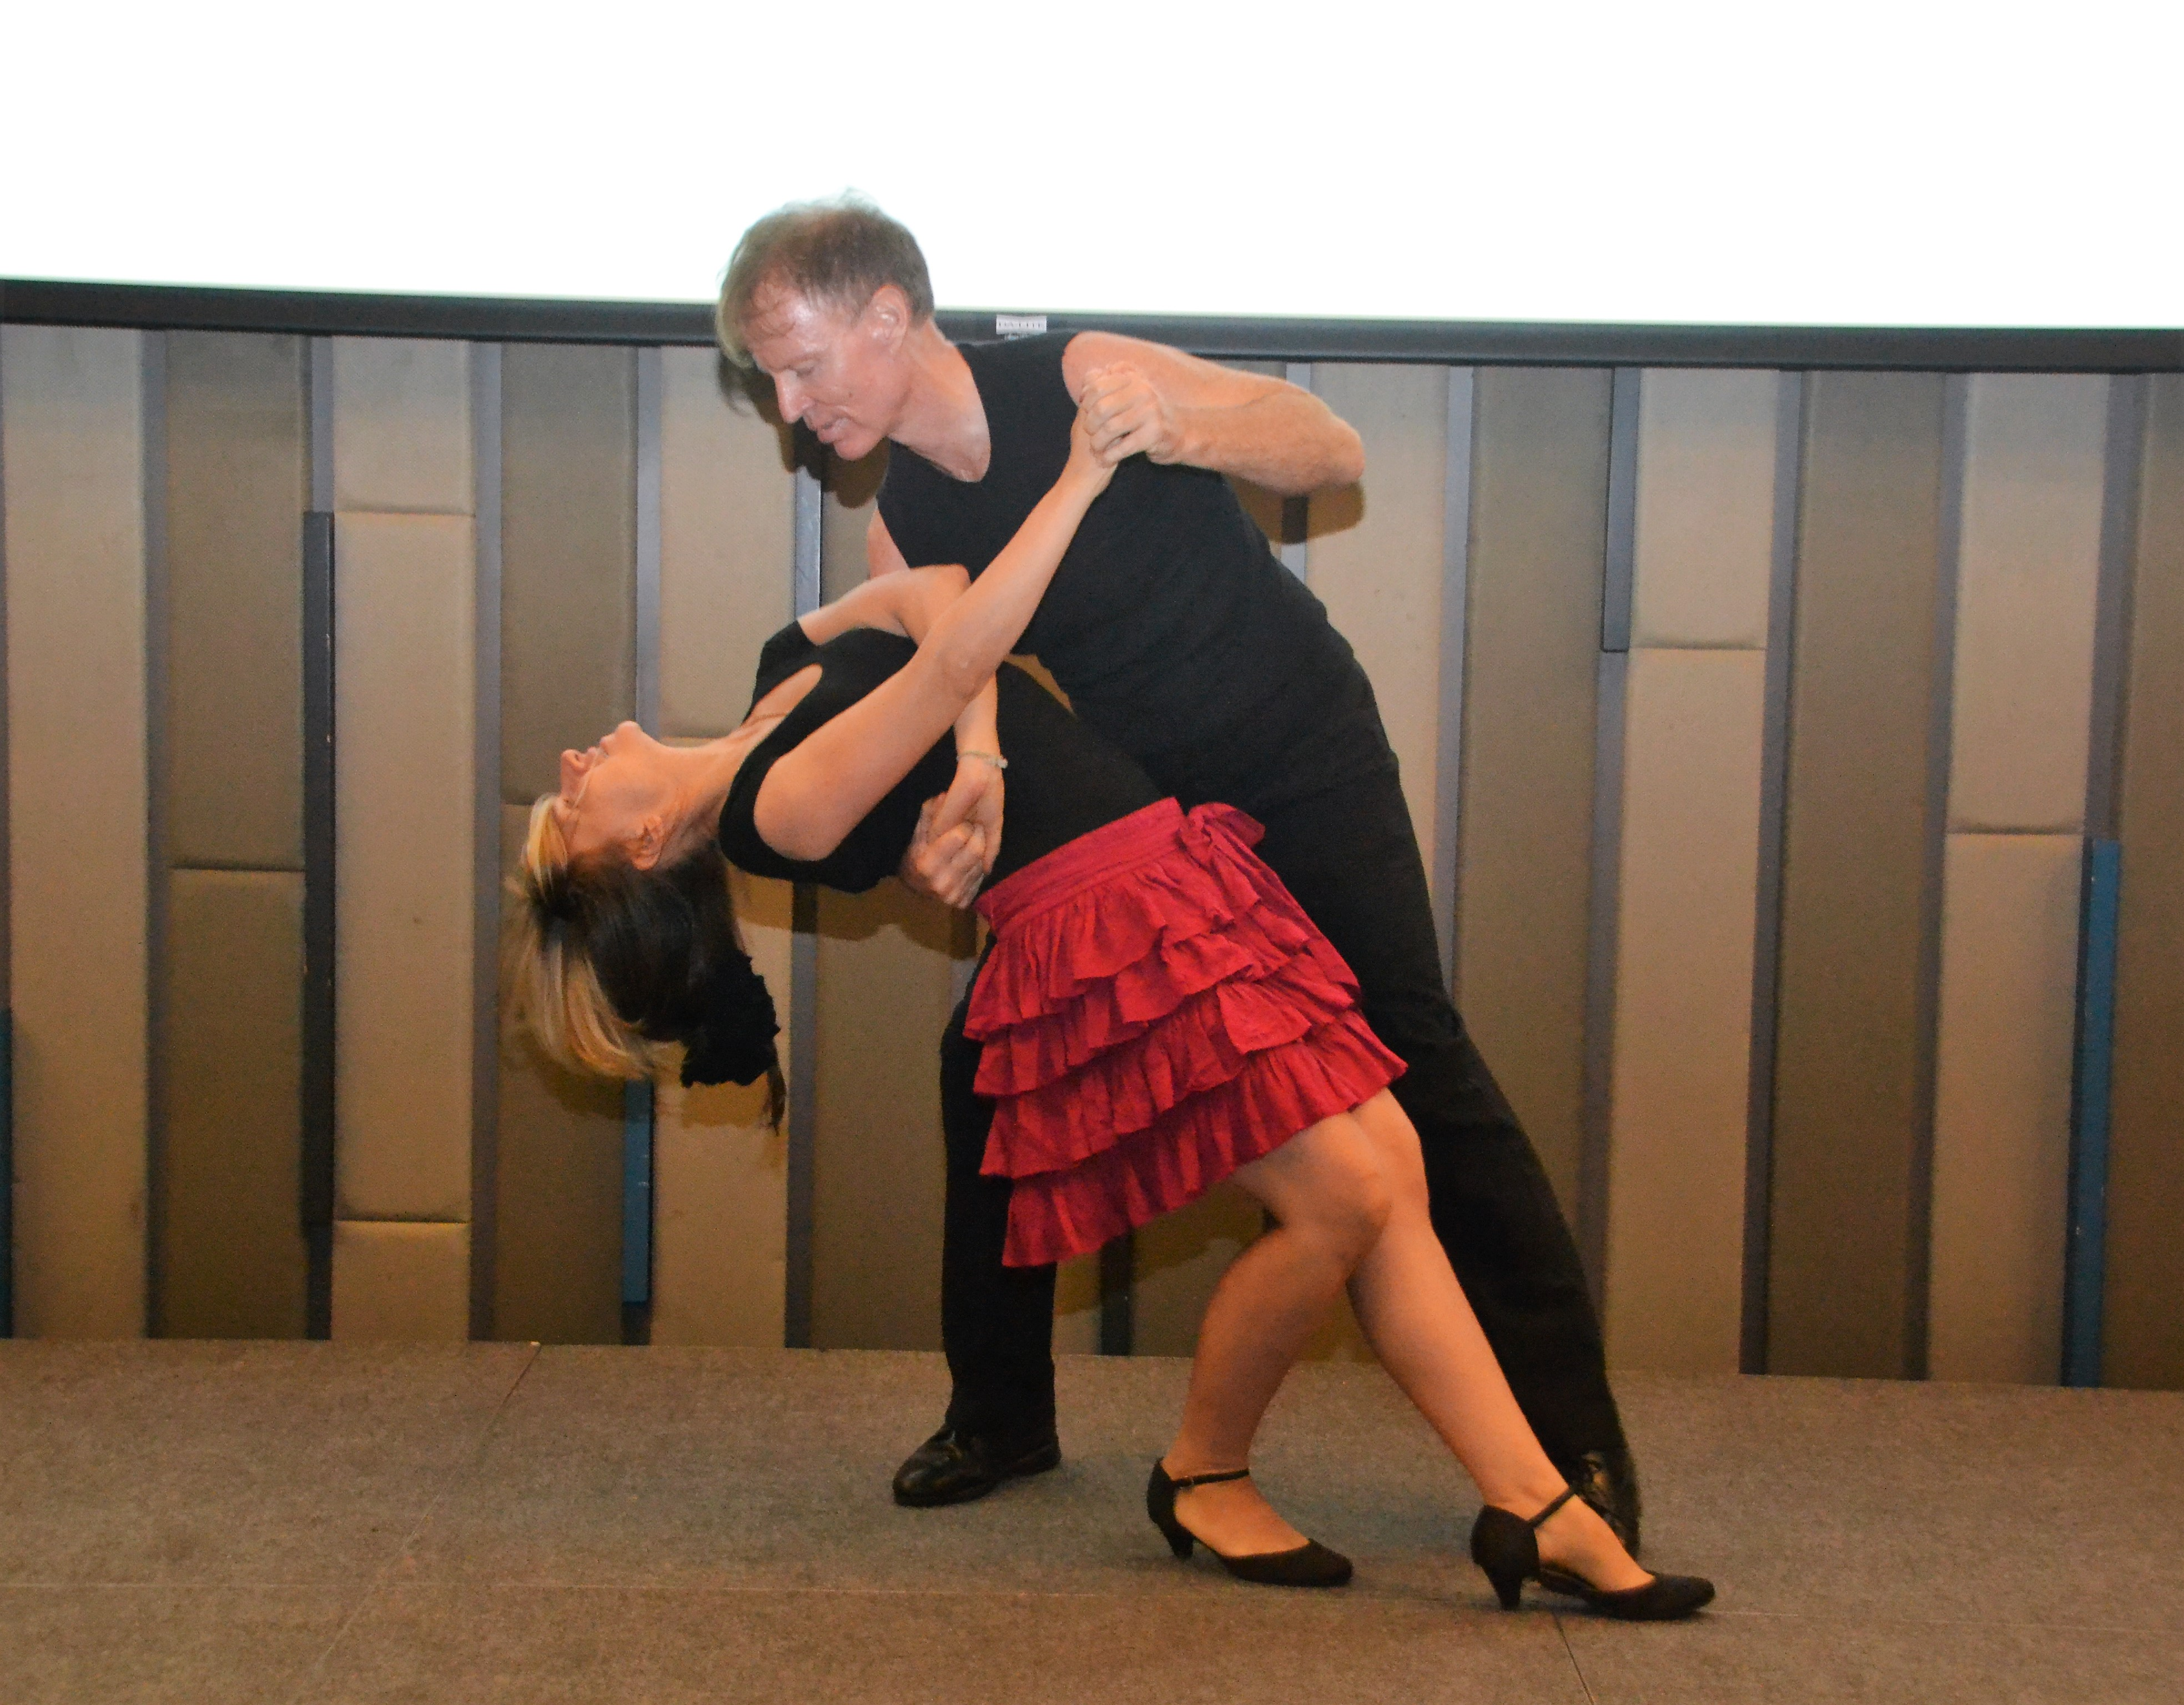 Ren Lexander concluded his presentation by performing a routine with his lovely dancing partner Sofi Ko to the delight of the PCEC members and guests.